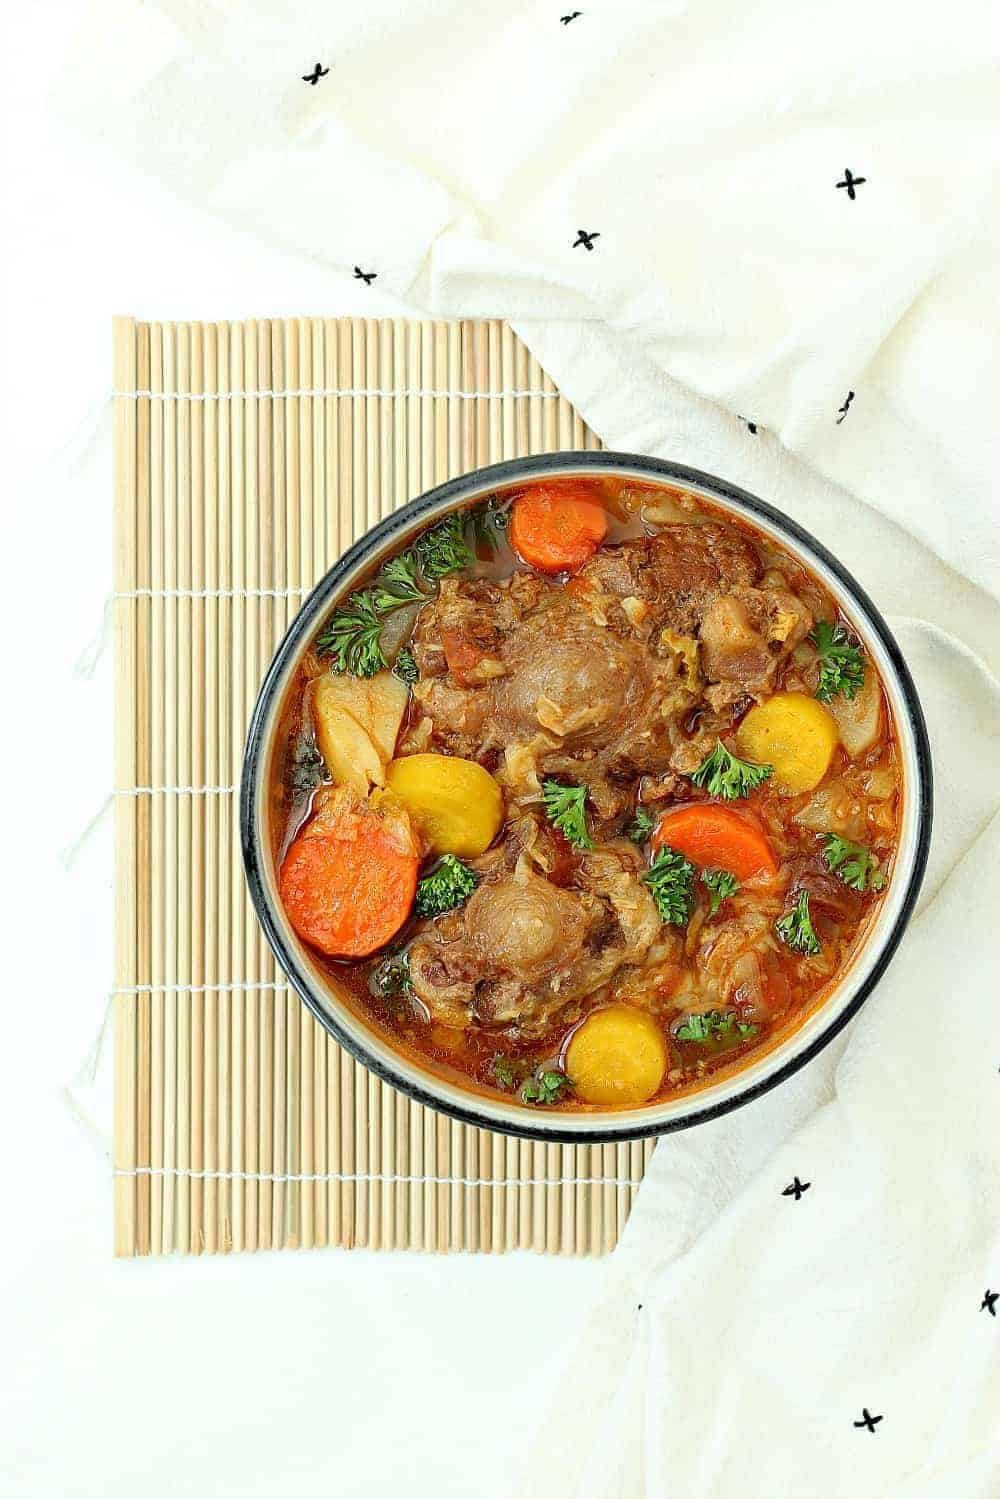 Instant Pot oxtail soup in a bowl on a table